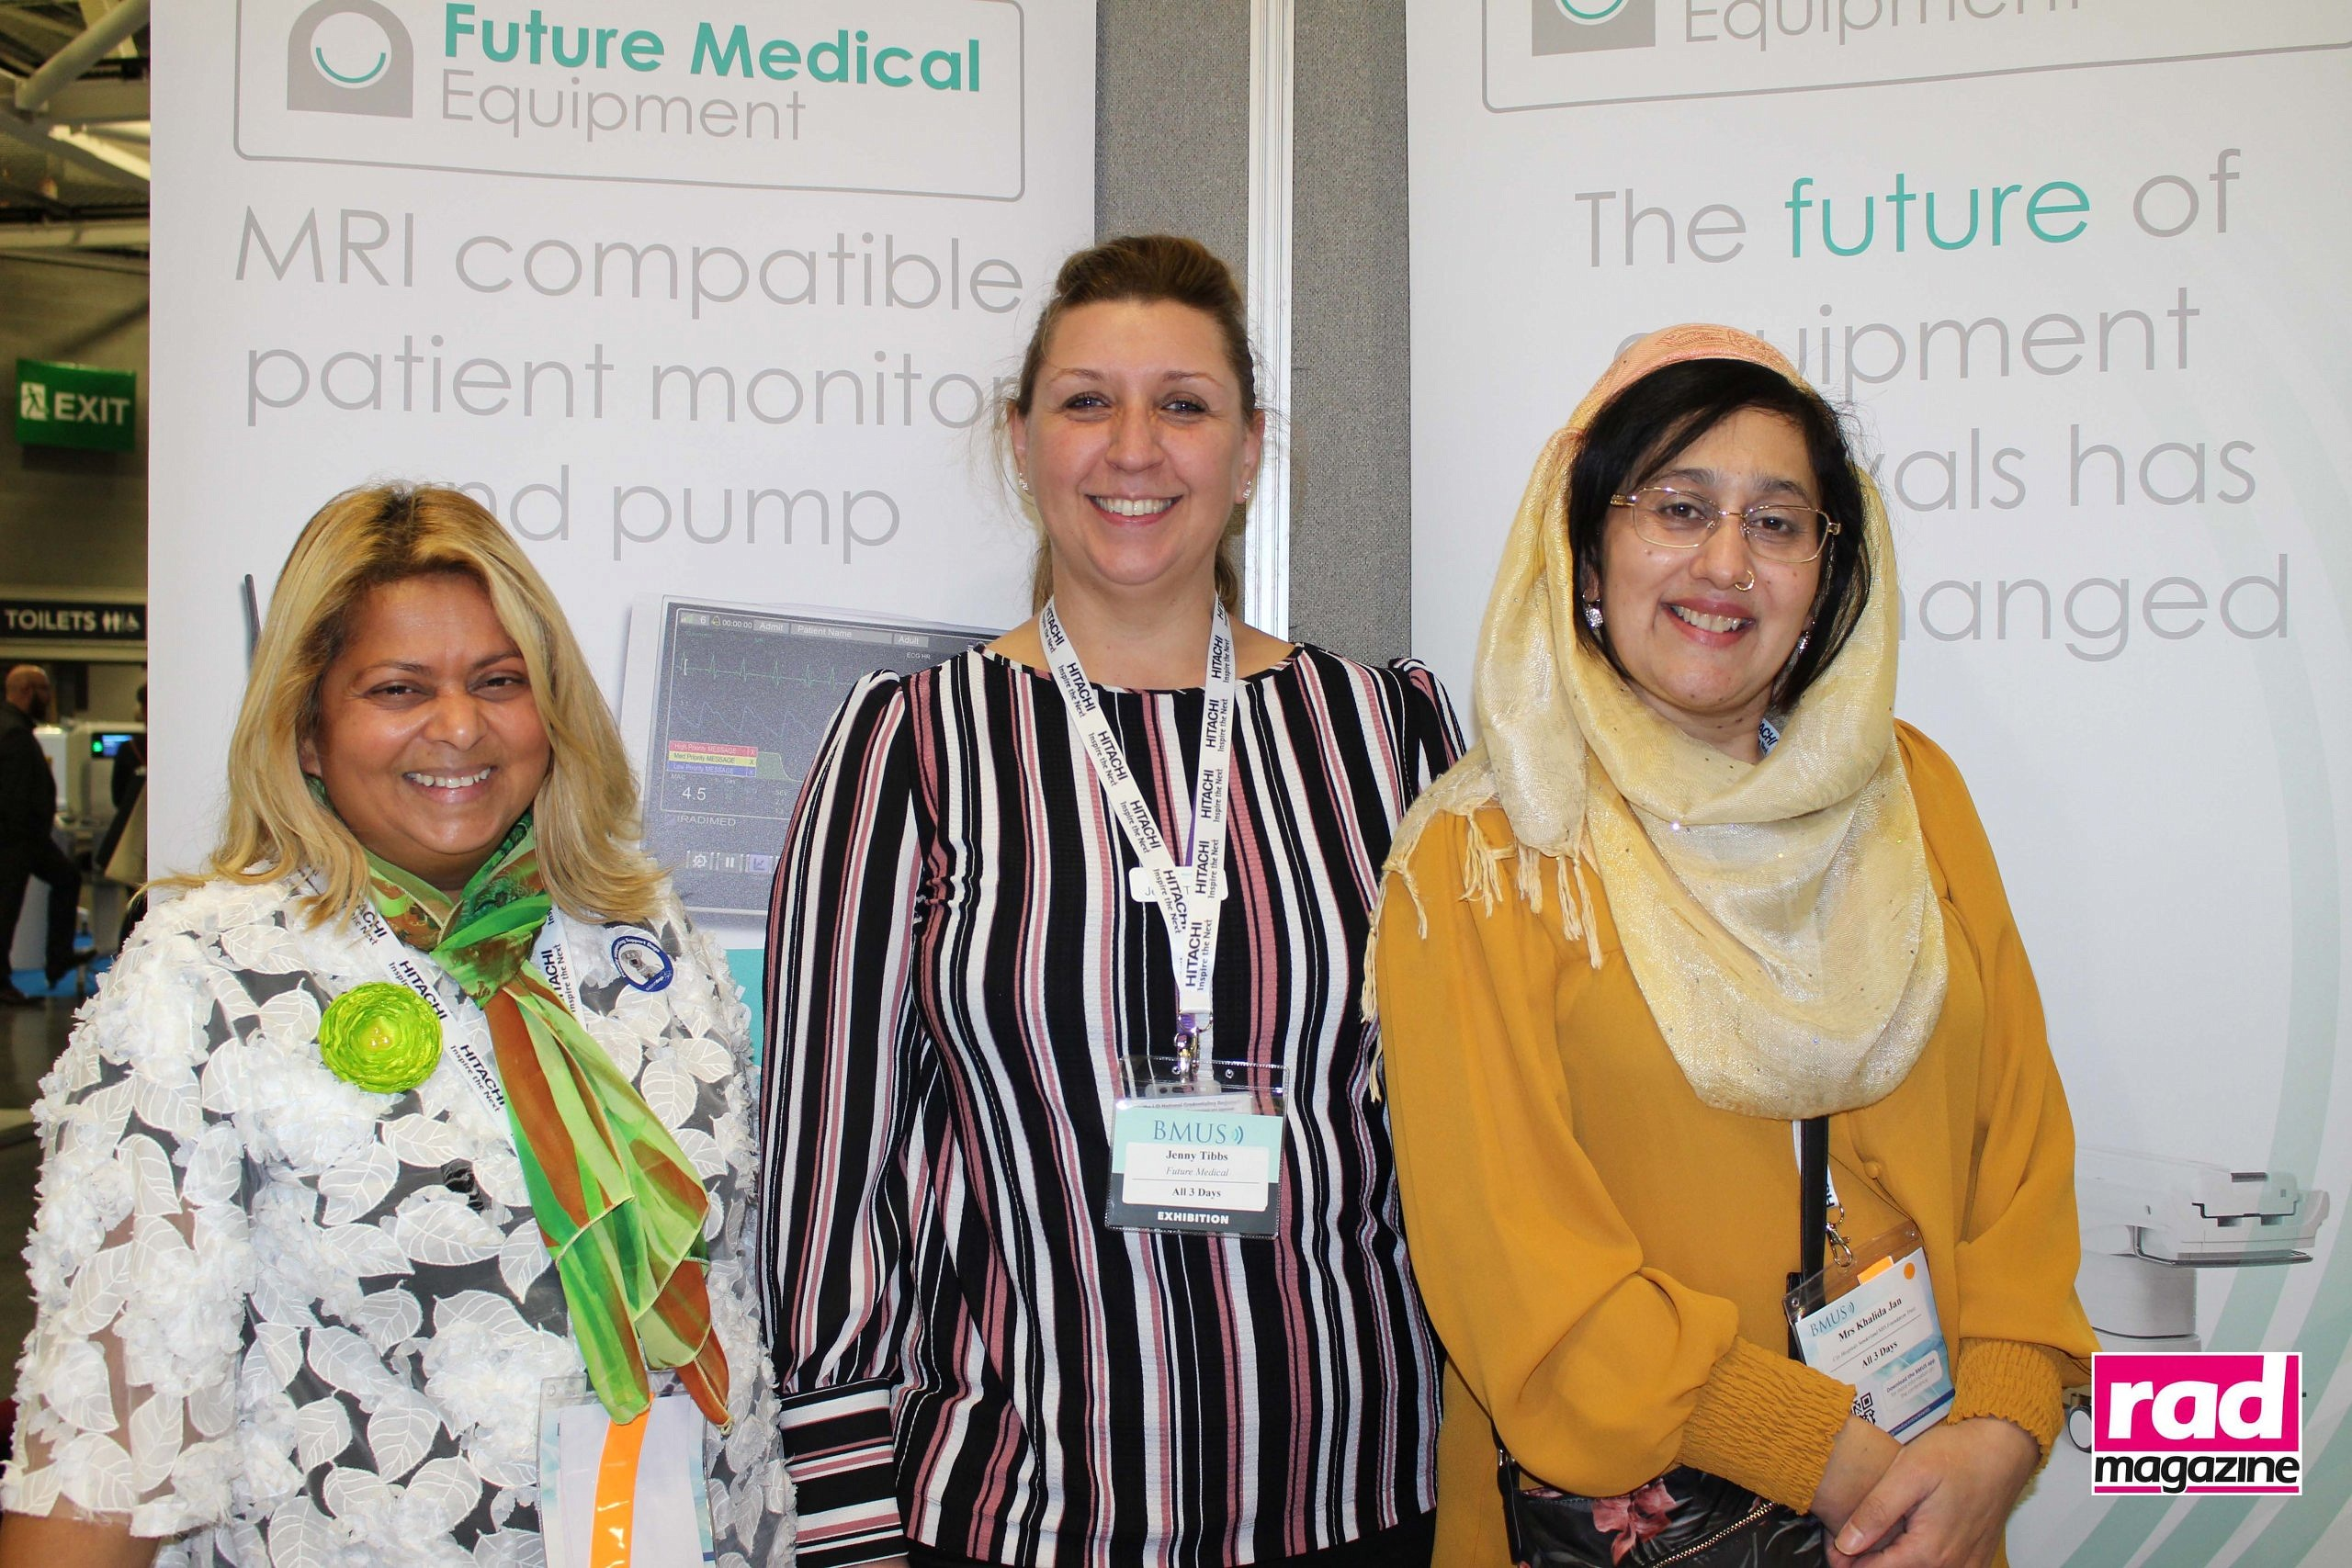 Future Medical at BMUS 2019